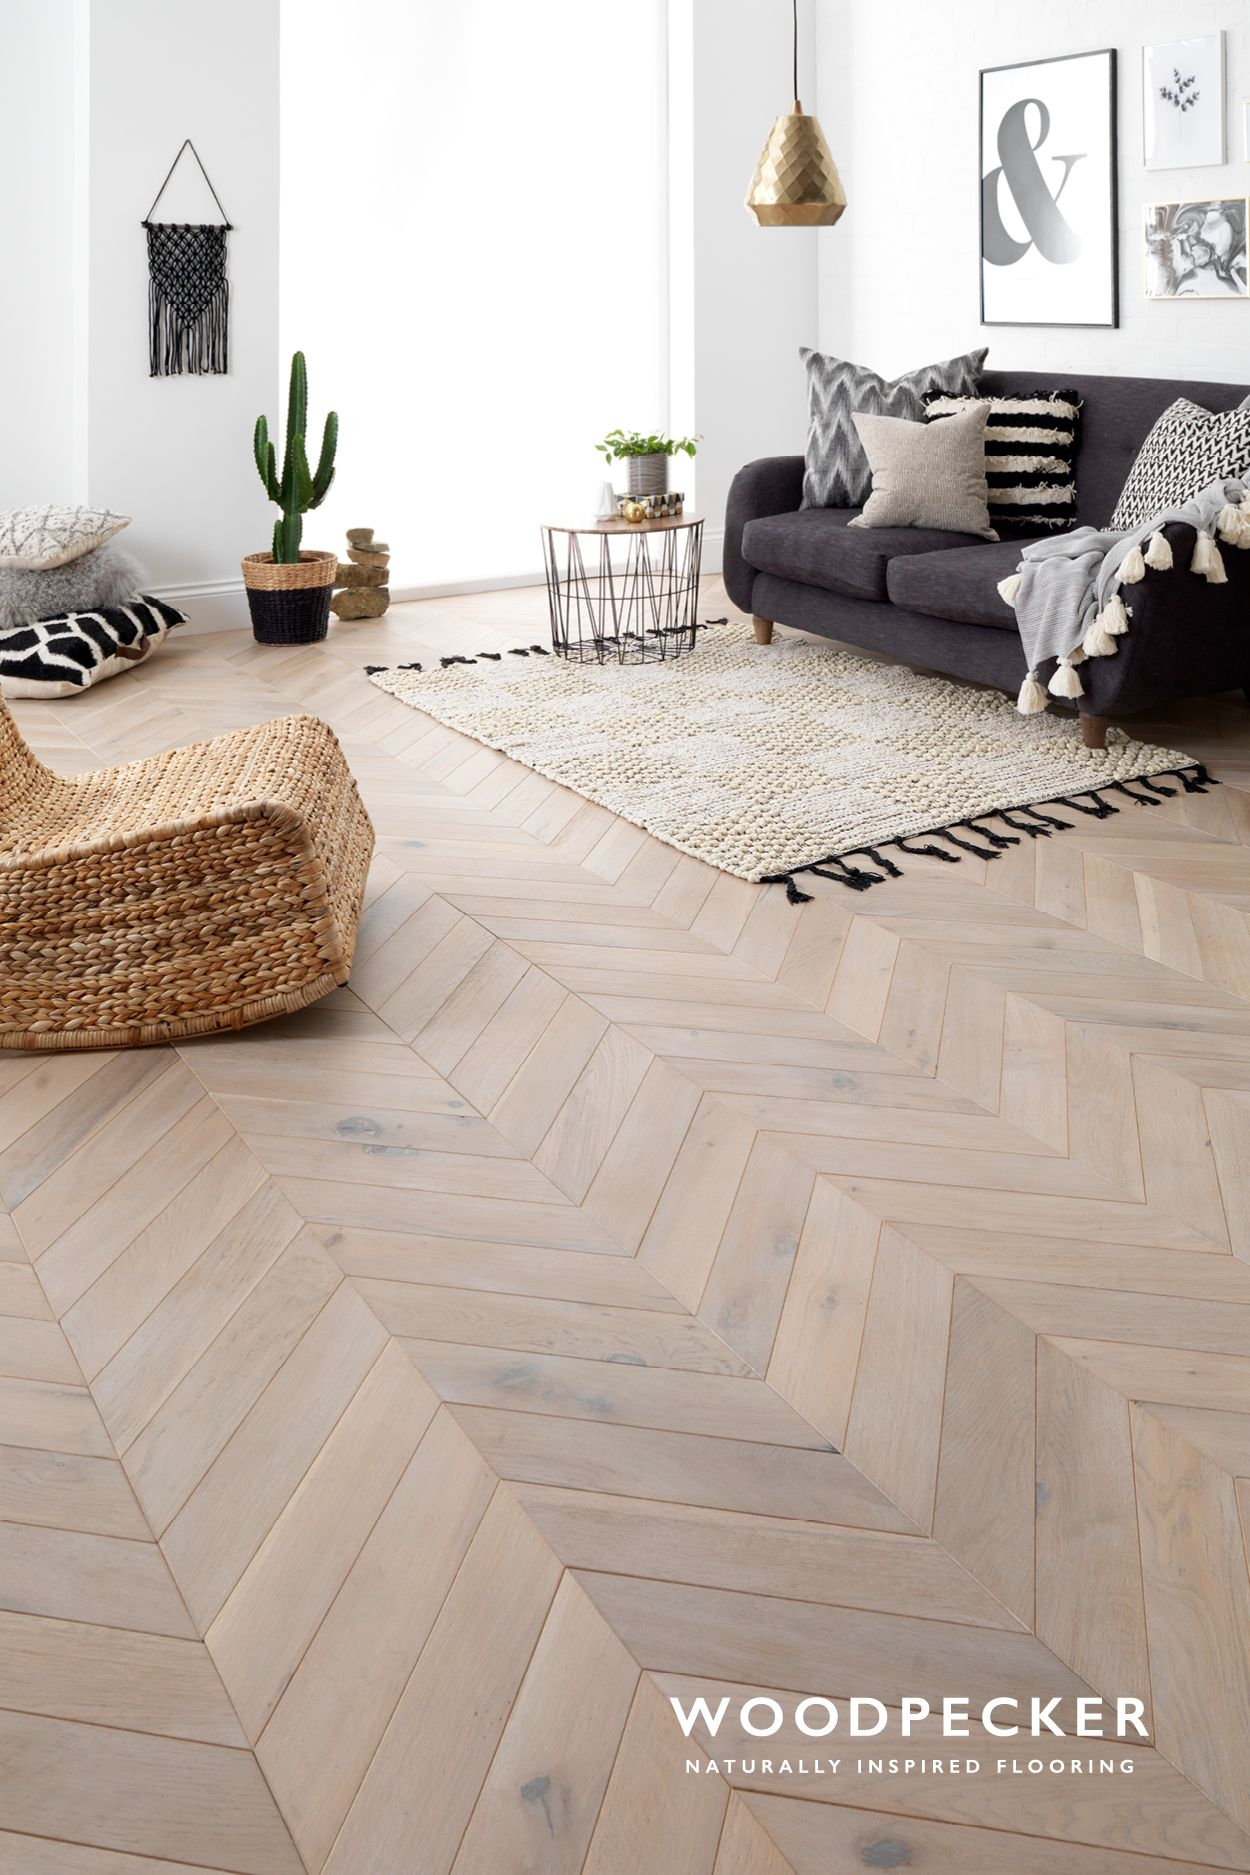 This Scandinavian Inspired Chevron Is Full Of Ashen Tones And Fun Character Washed In White The Blocks Are Angled For A Unique Look